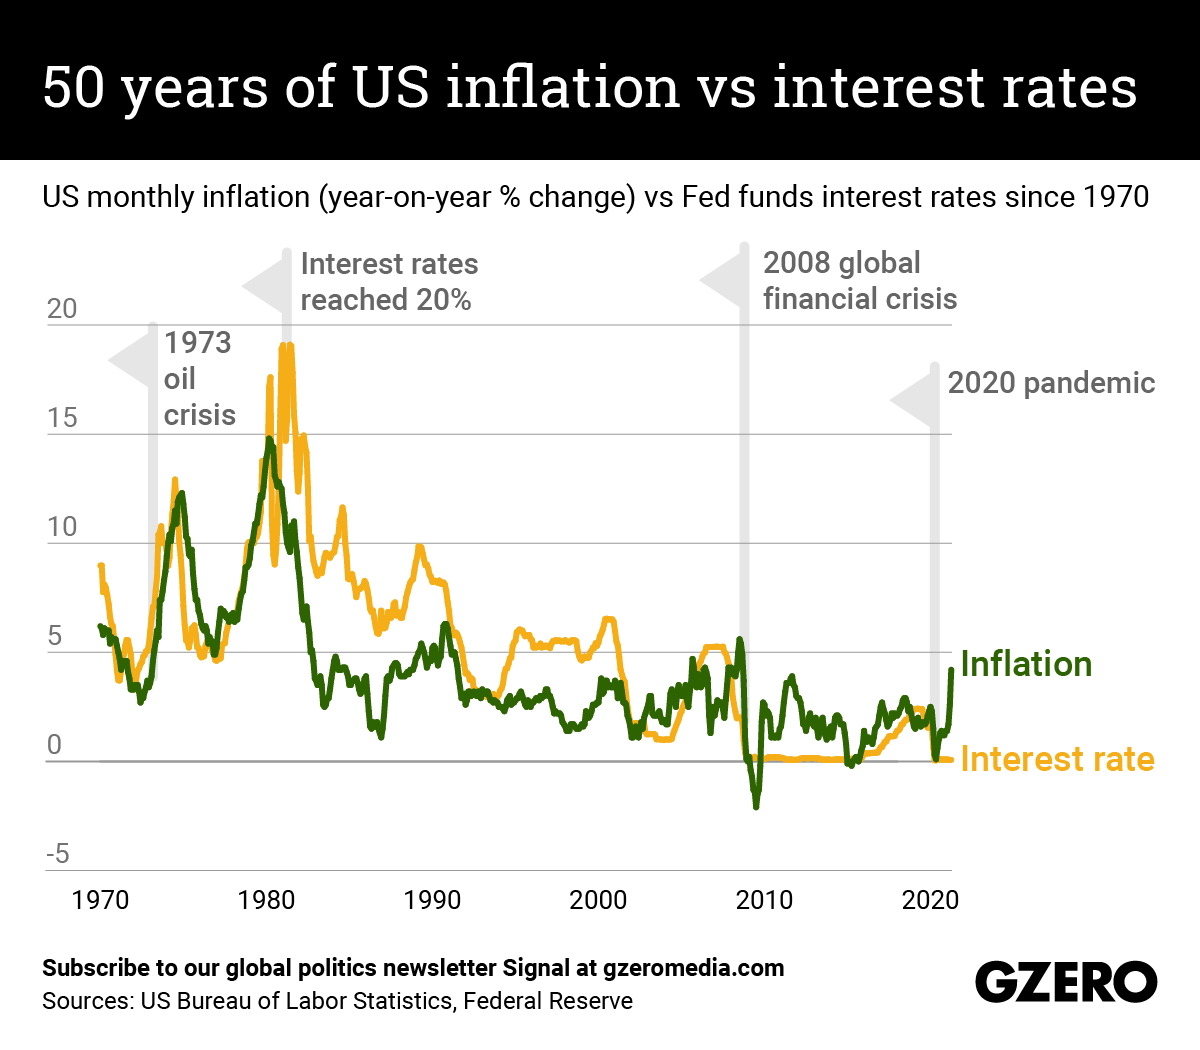 The Graphic Truth: 50 years of US inflation vs interest rates